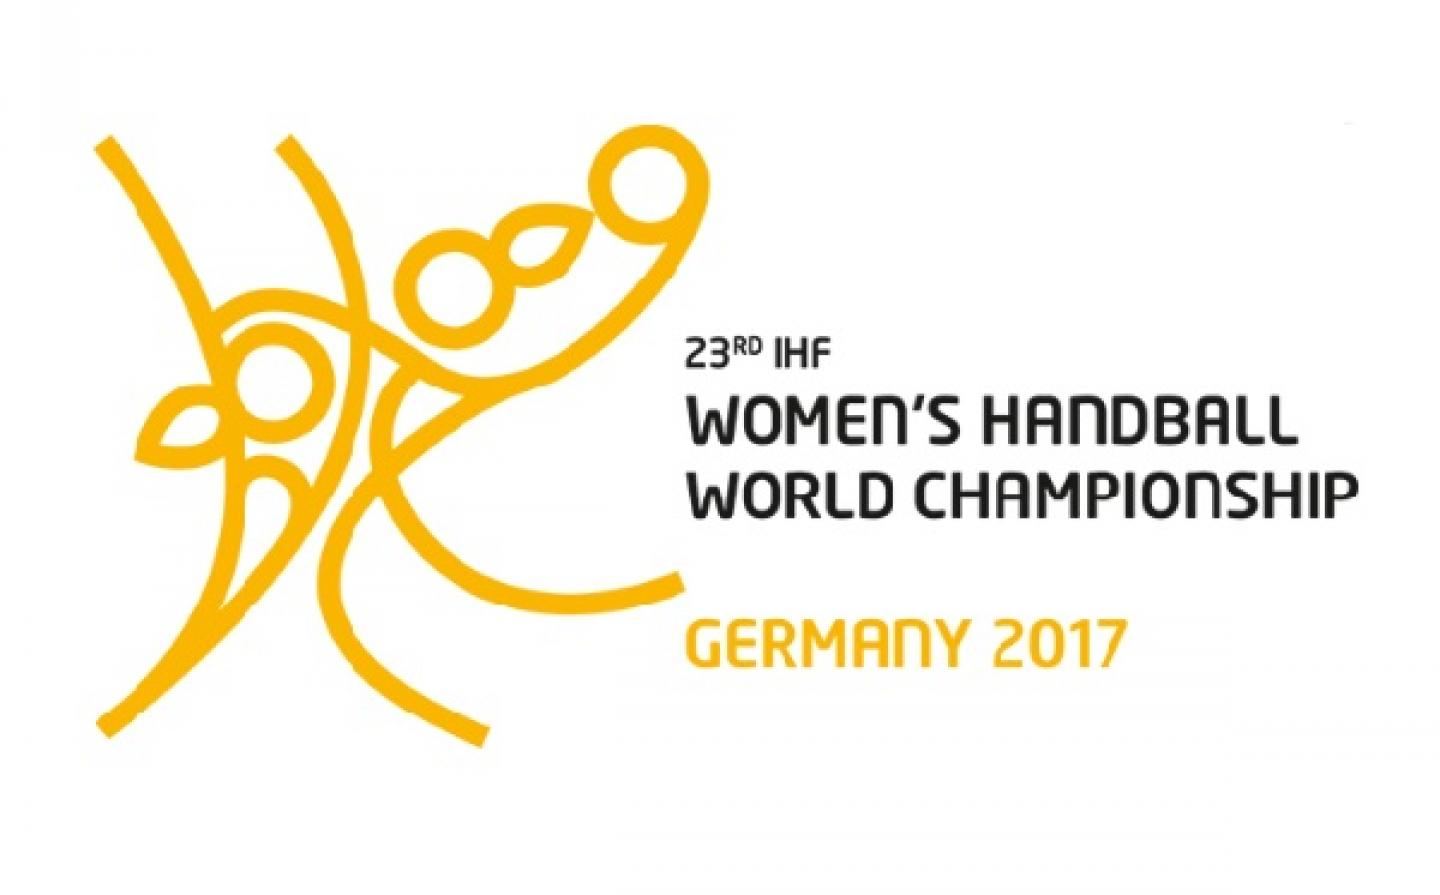 Germany 2017 - Changed throw-off times